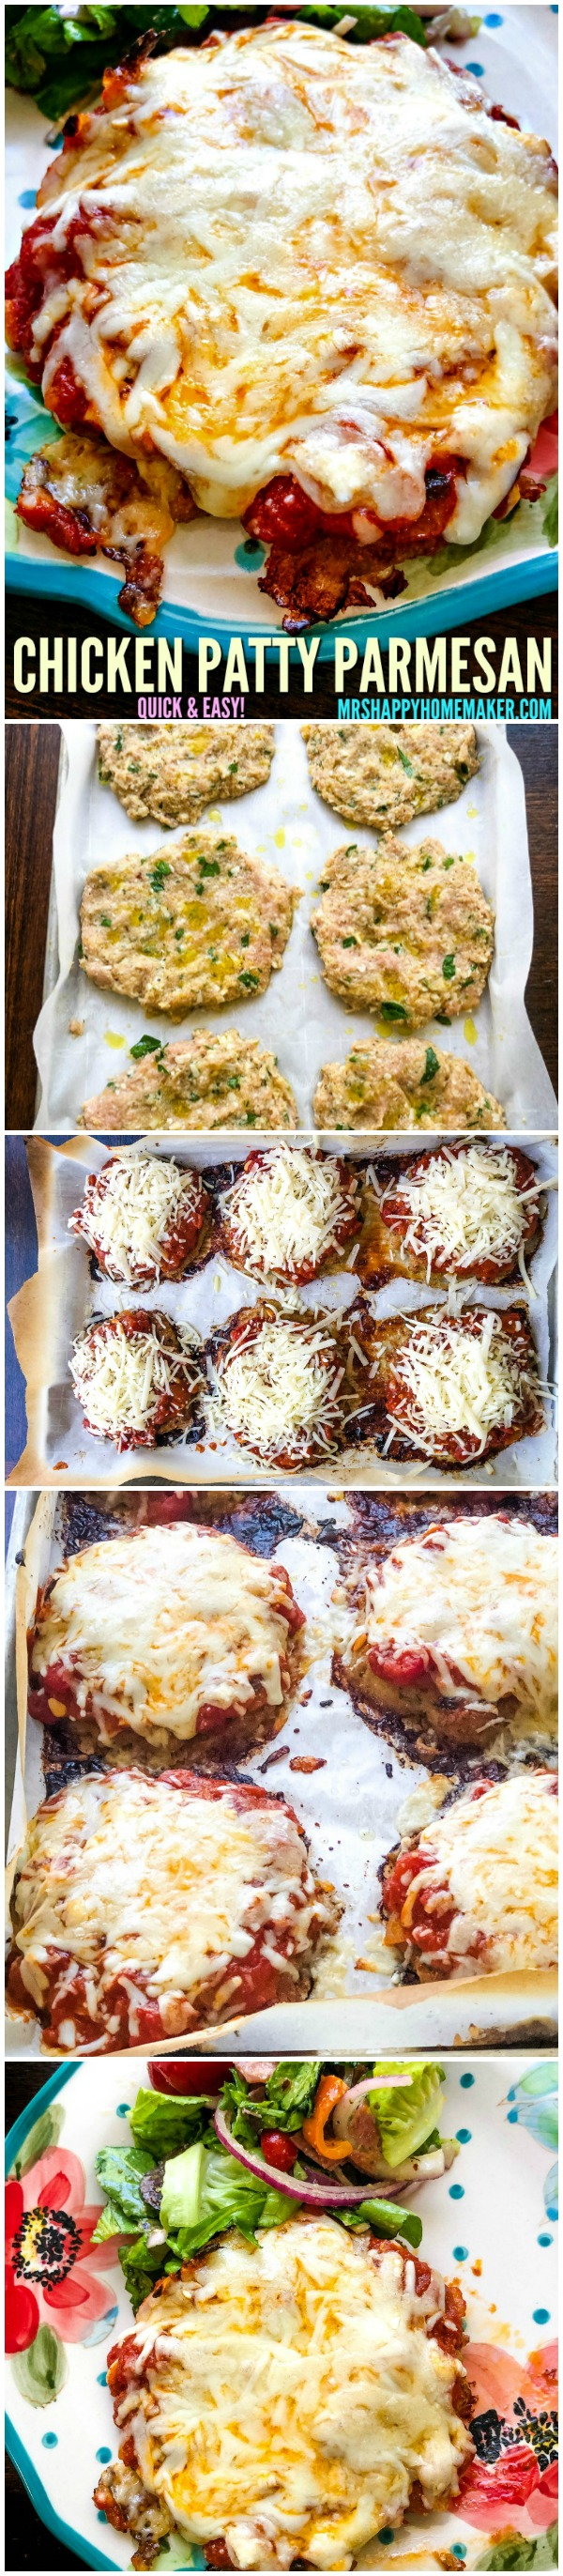 If you love chicken parmesan and quick & easy meals like I do - then you're gonna love this Chicken Patty Parmesan. It ready in less than 30 minutes!  | MrsHappyHomemaker.com @thathousewife #chickenpattyparm #chickenpattyparmesan #chickenparmesan #chickenparm #chicken